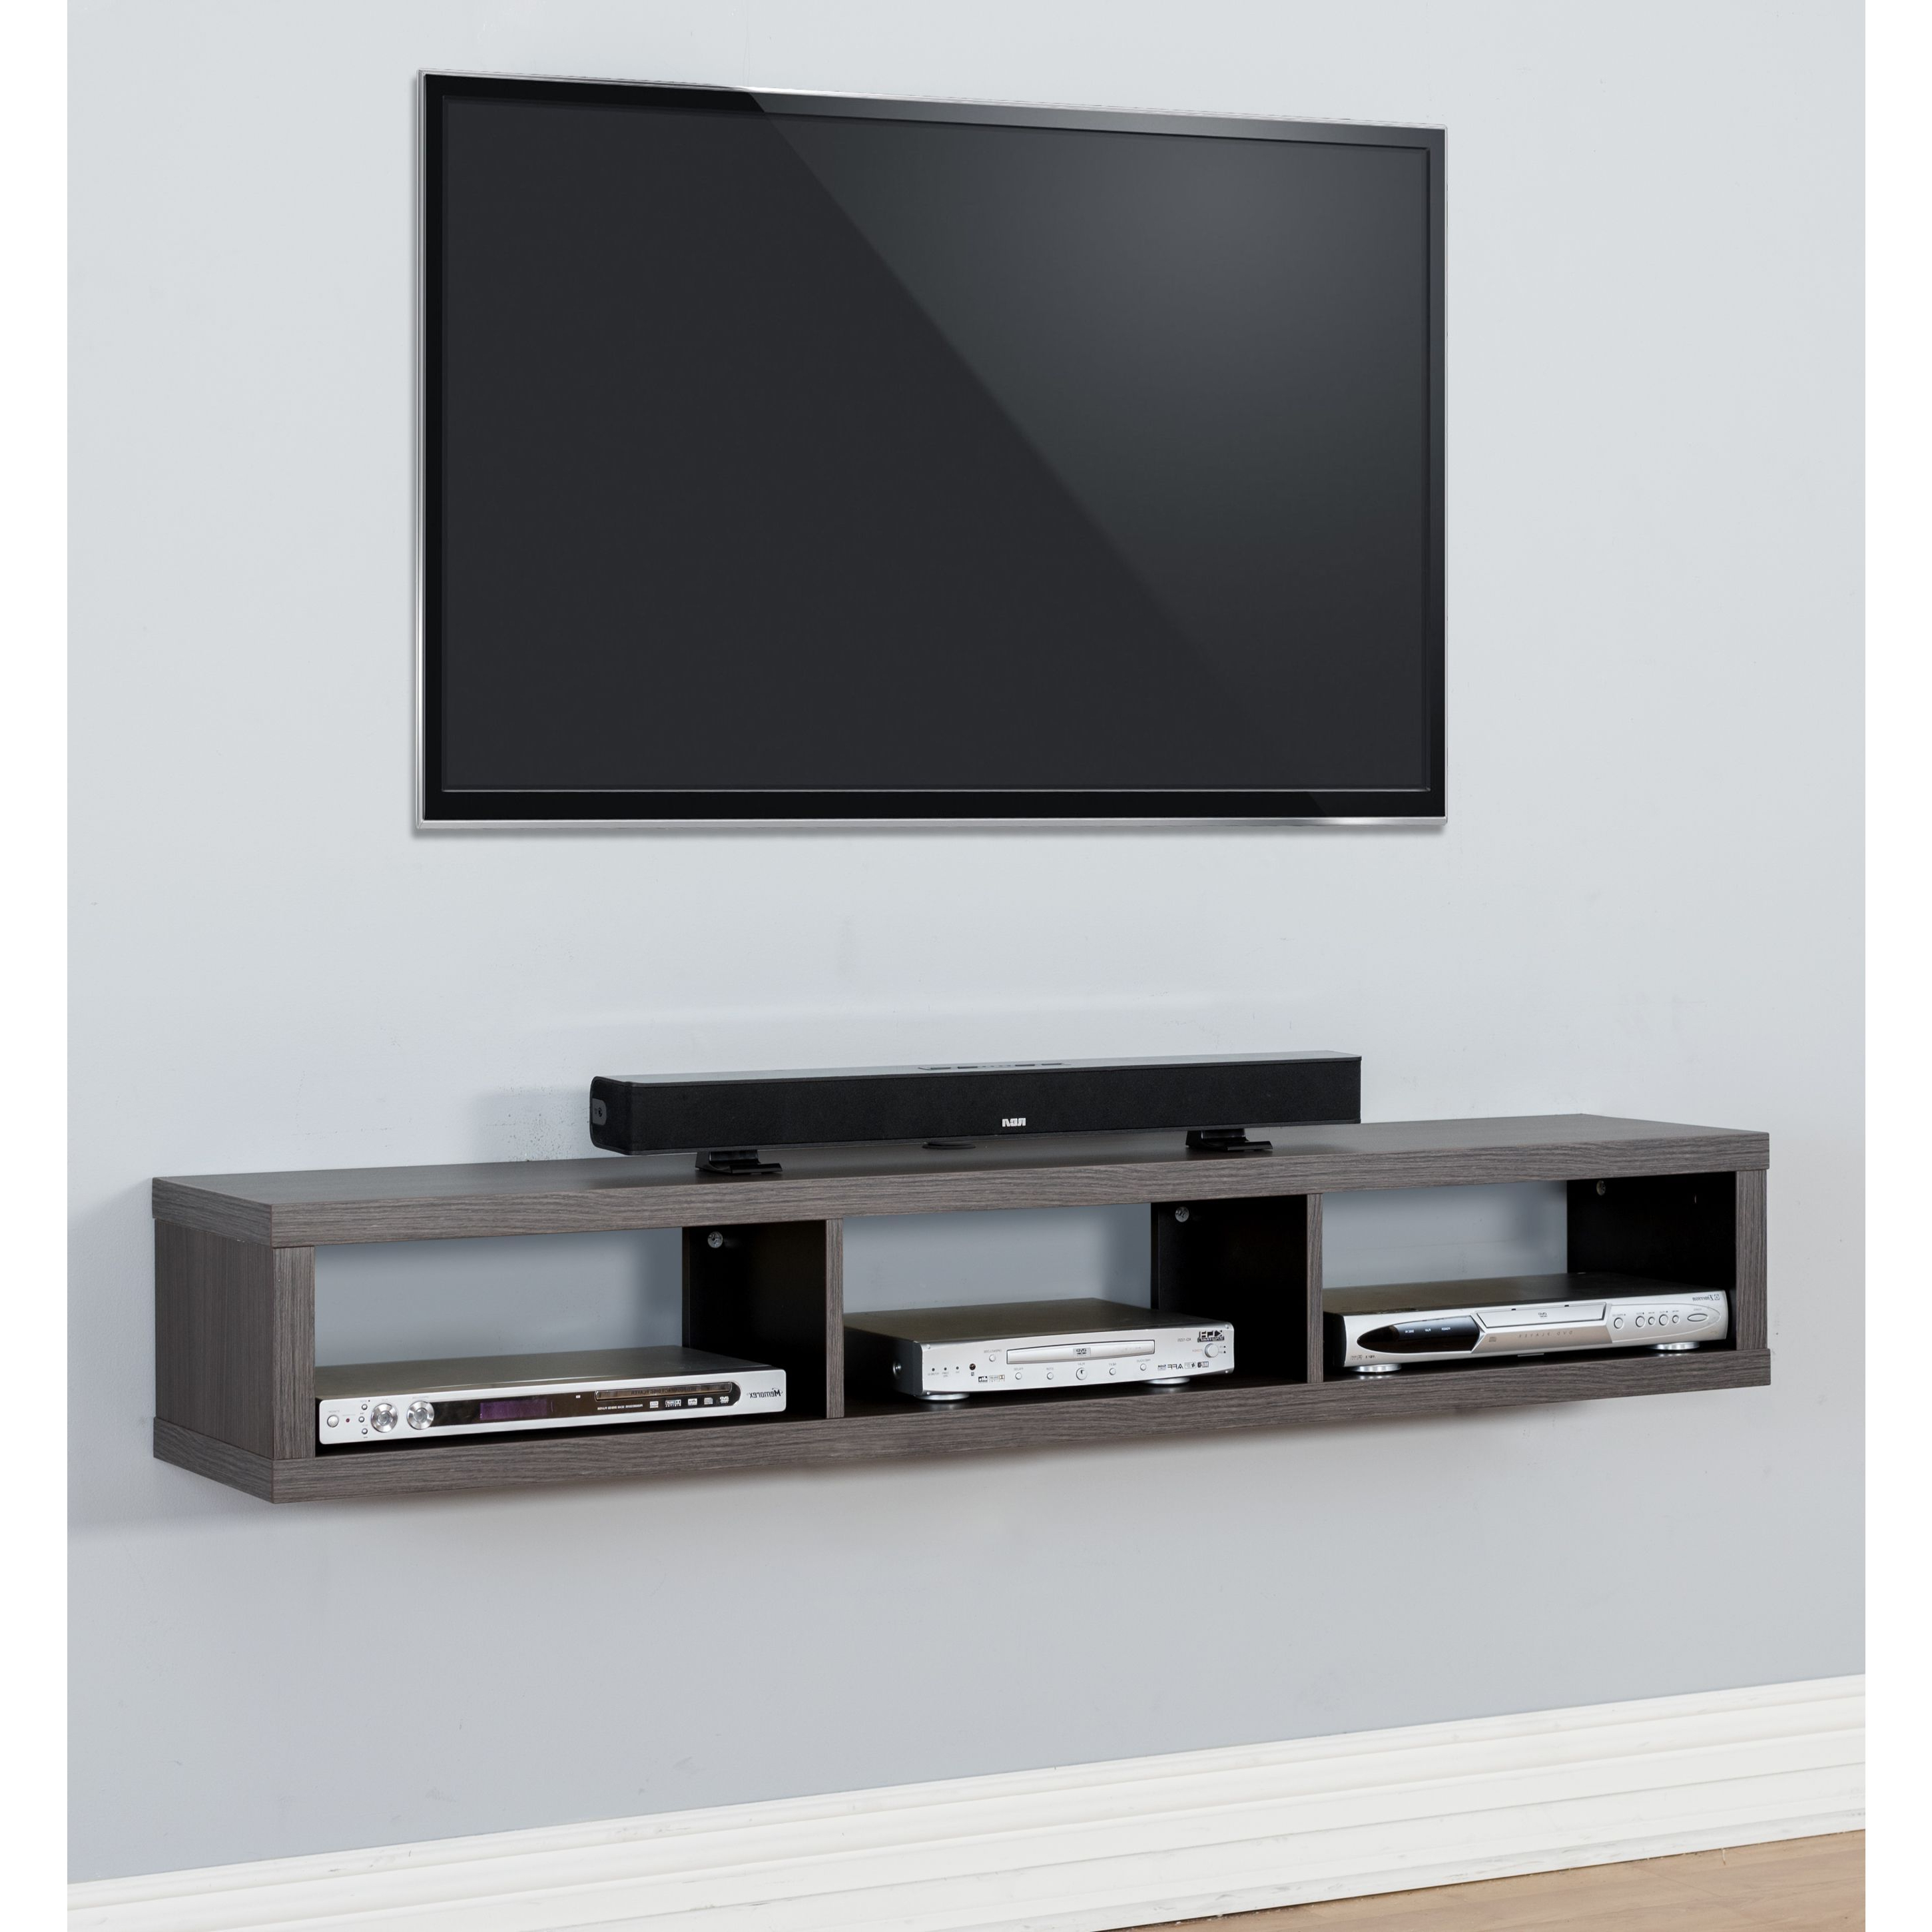 Console Tables Under Wall Mounted Tv Throughout Current The Functional And Upscale Appearance Of This Wall Mounted Tv (View 18 of 20)